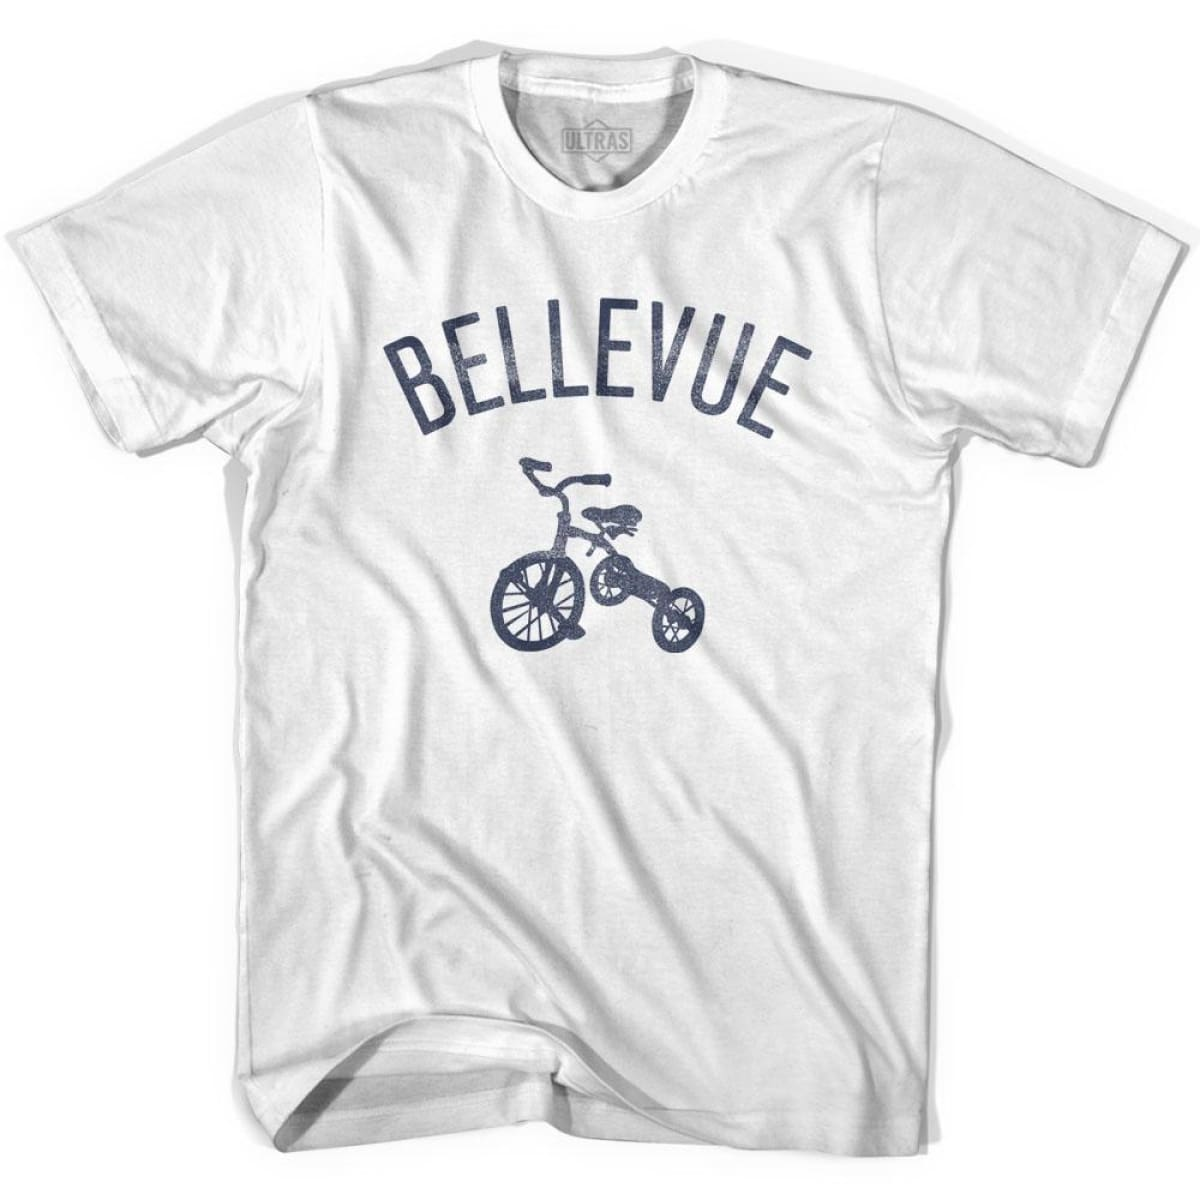 Bellevue City Tricycle Womens Cotton T-shirt - Tricycle City